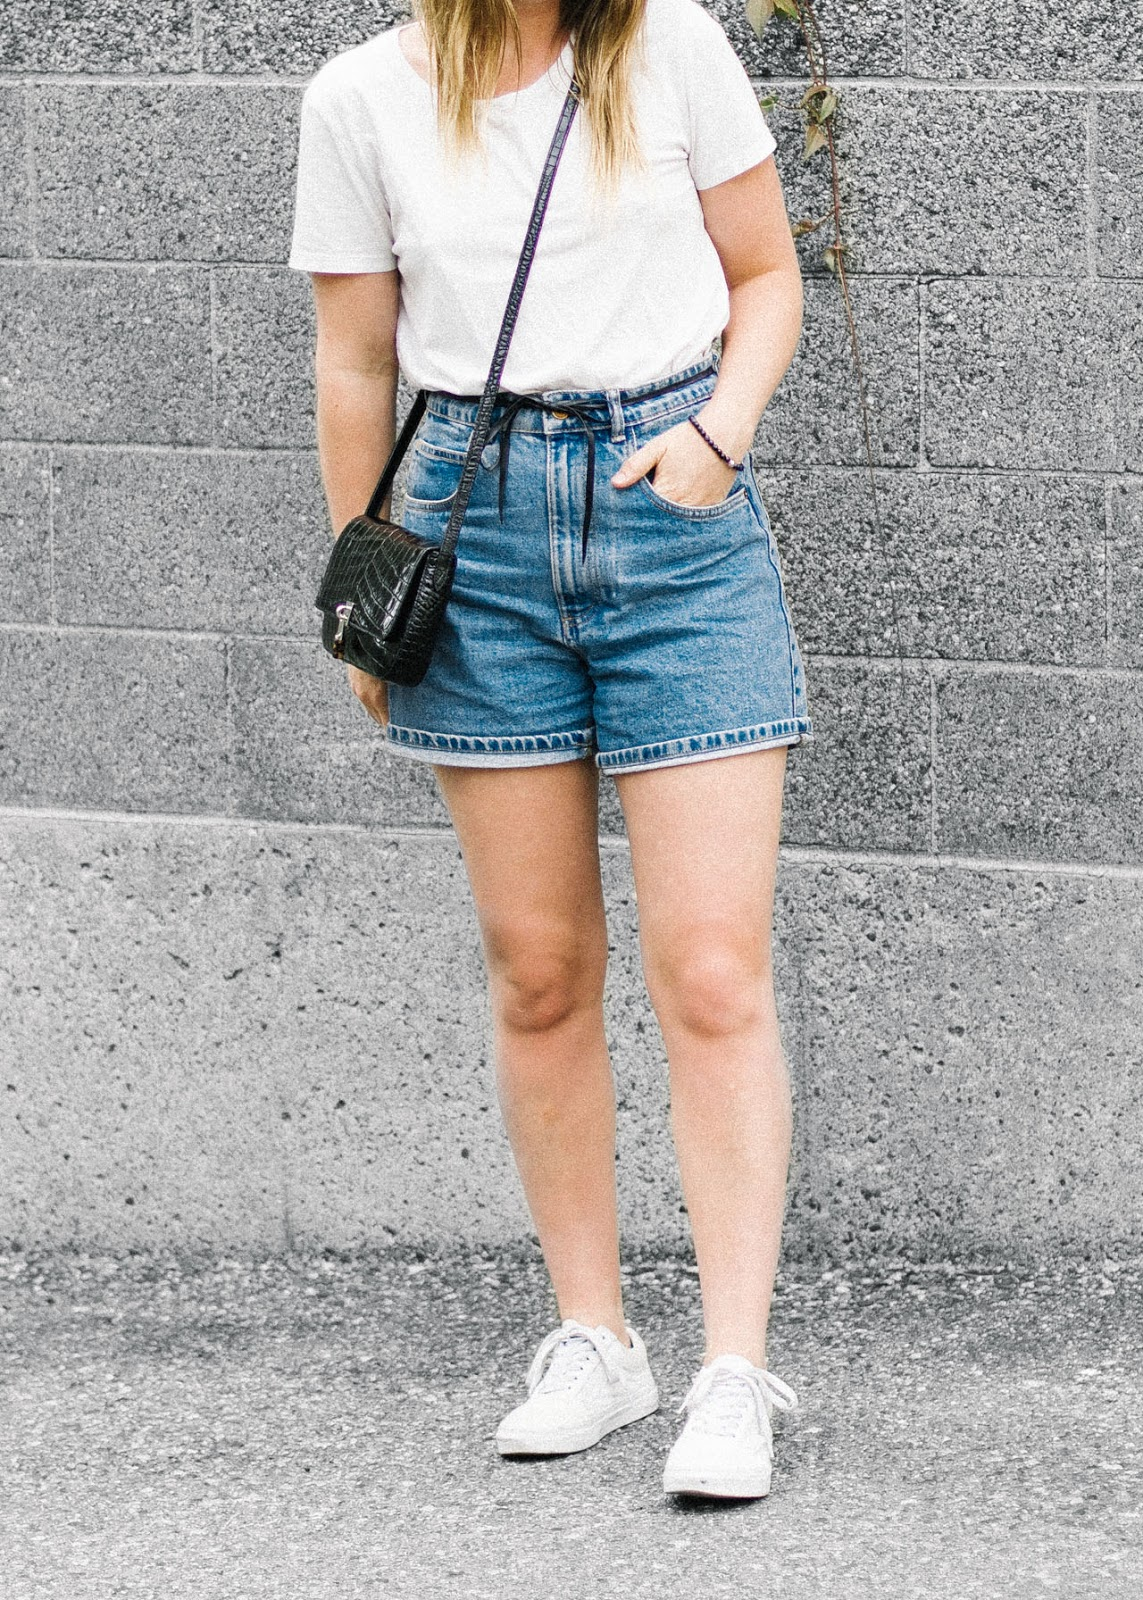 Vancouver Fashion Blogger - Summer style outfit - Vans - Urban Outfitters - Zara